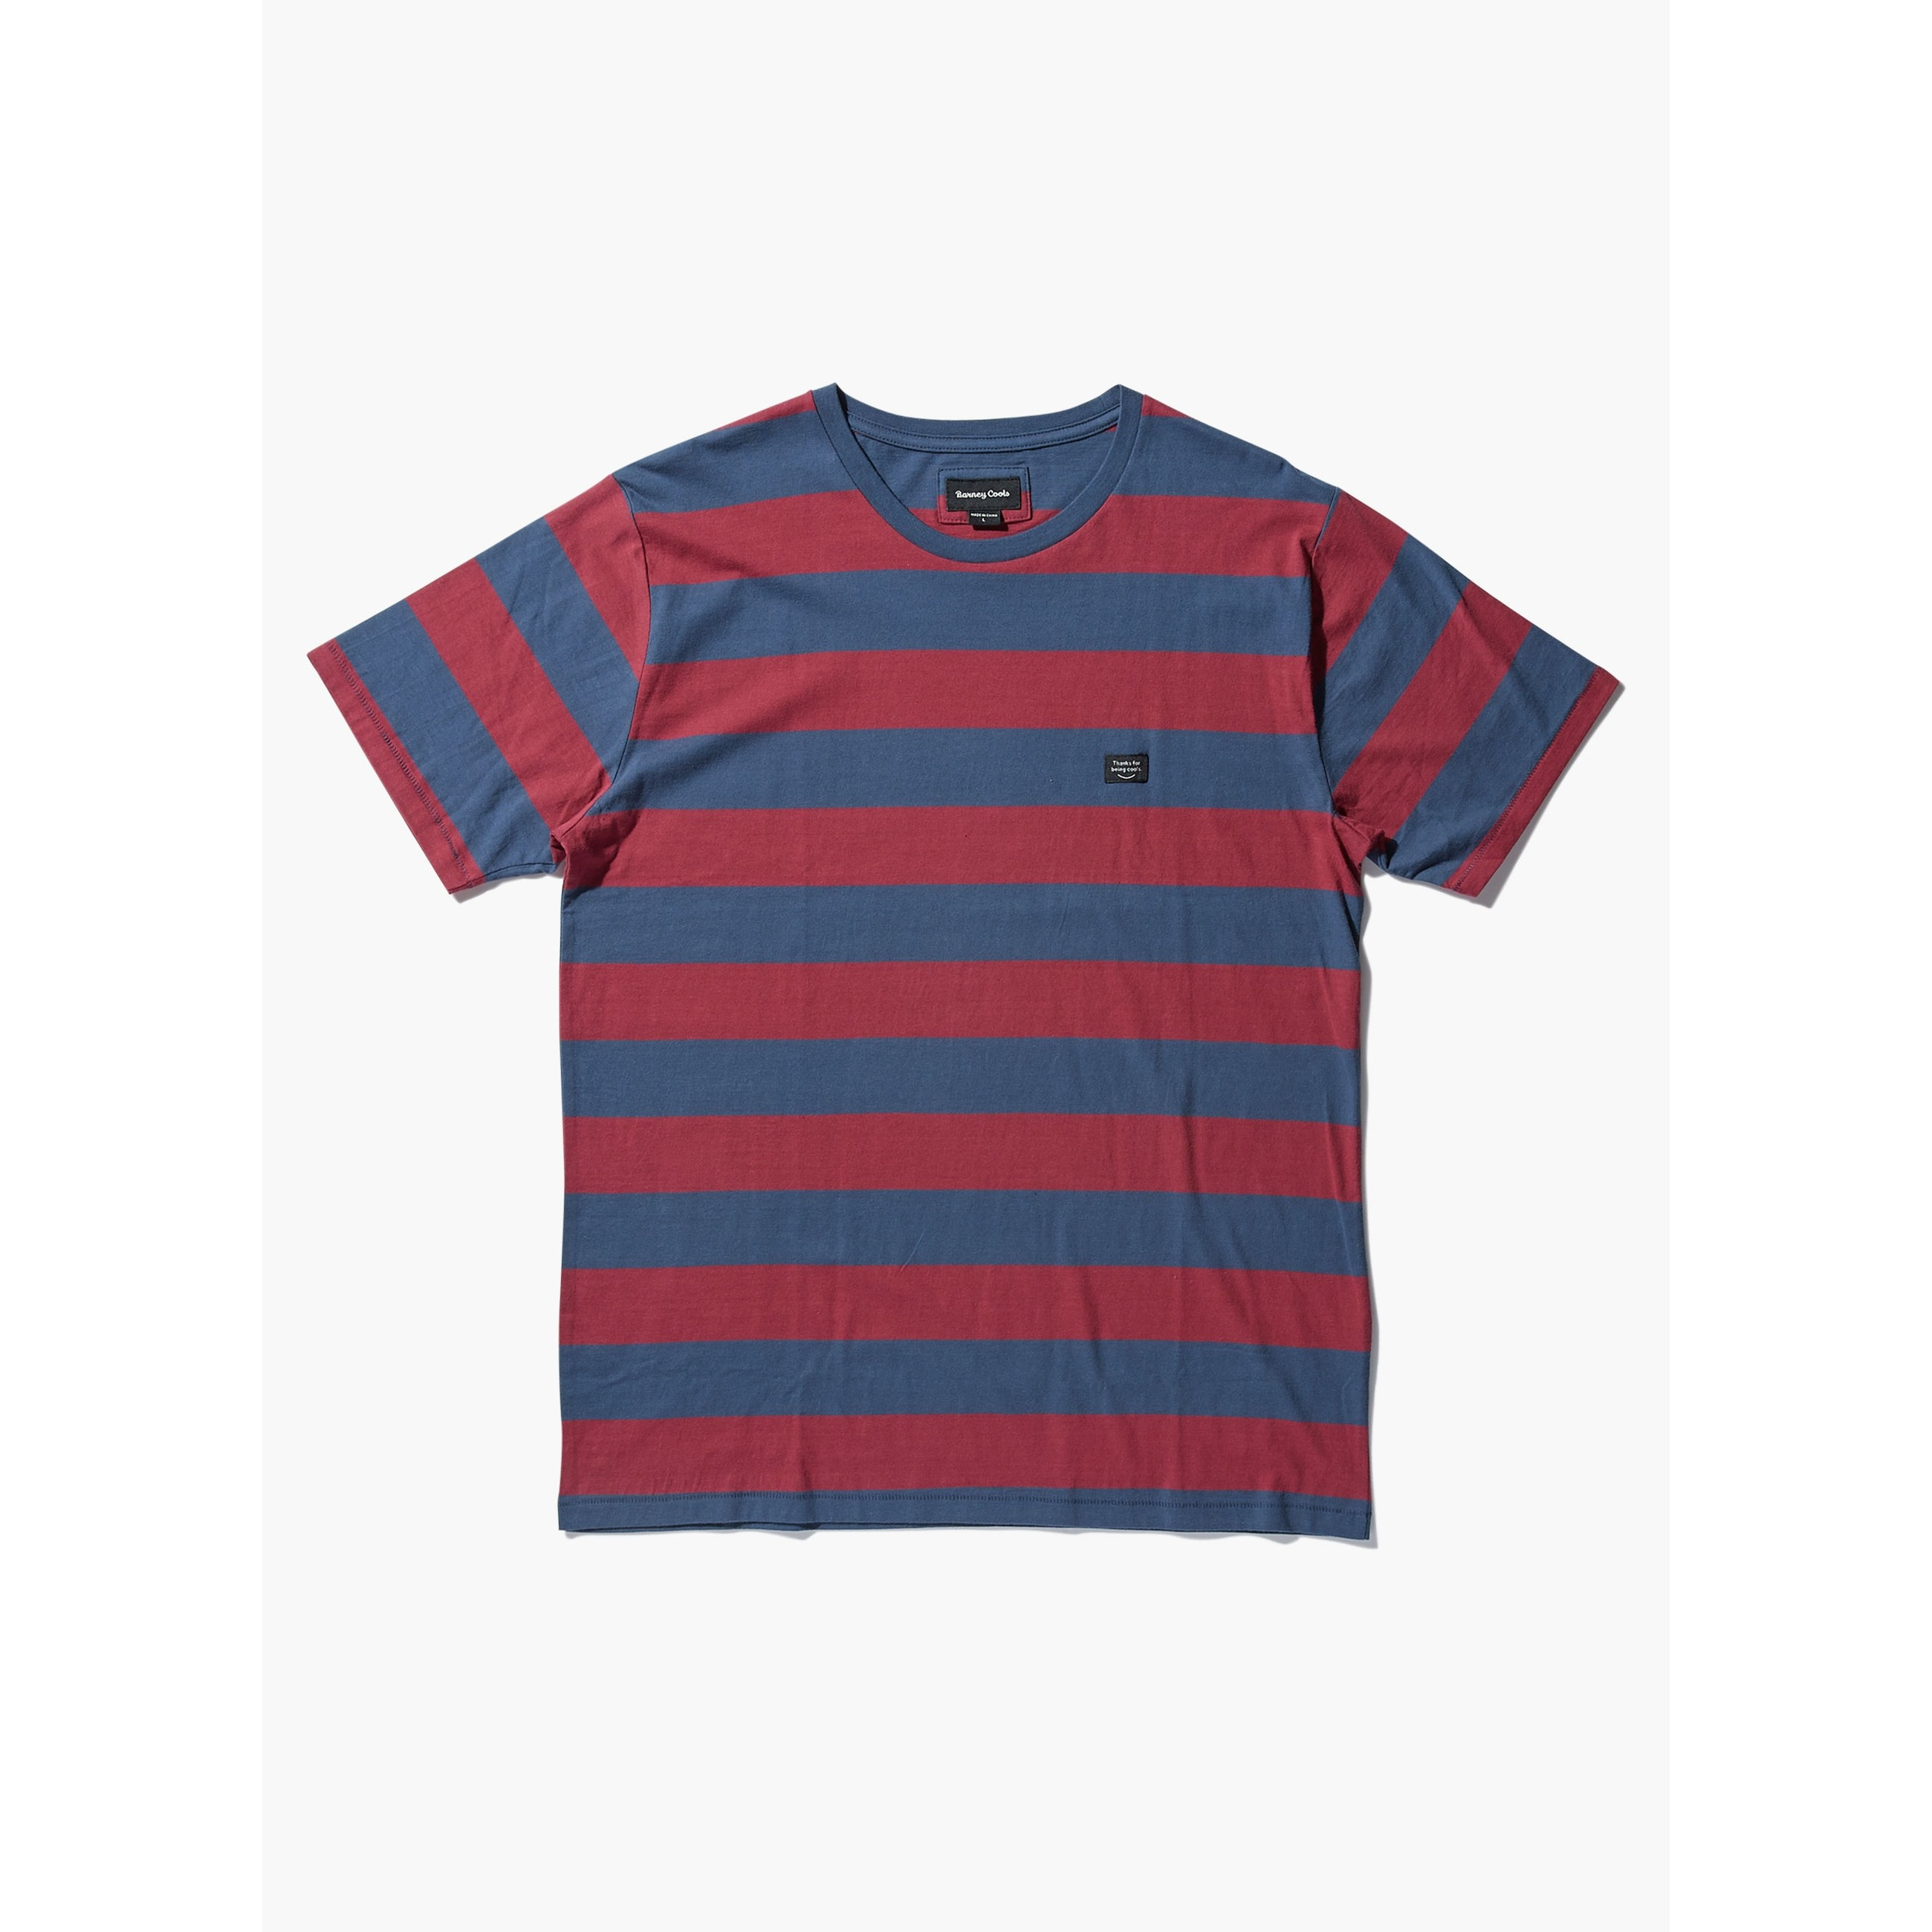 Barney Cools B. Thankful Tee: Red Stripe